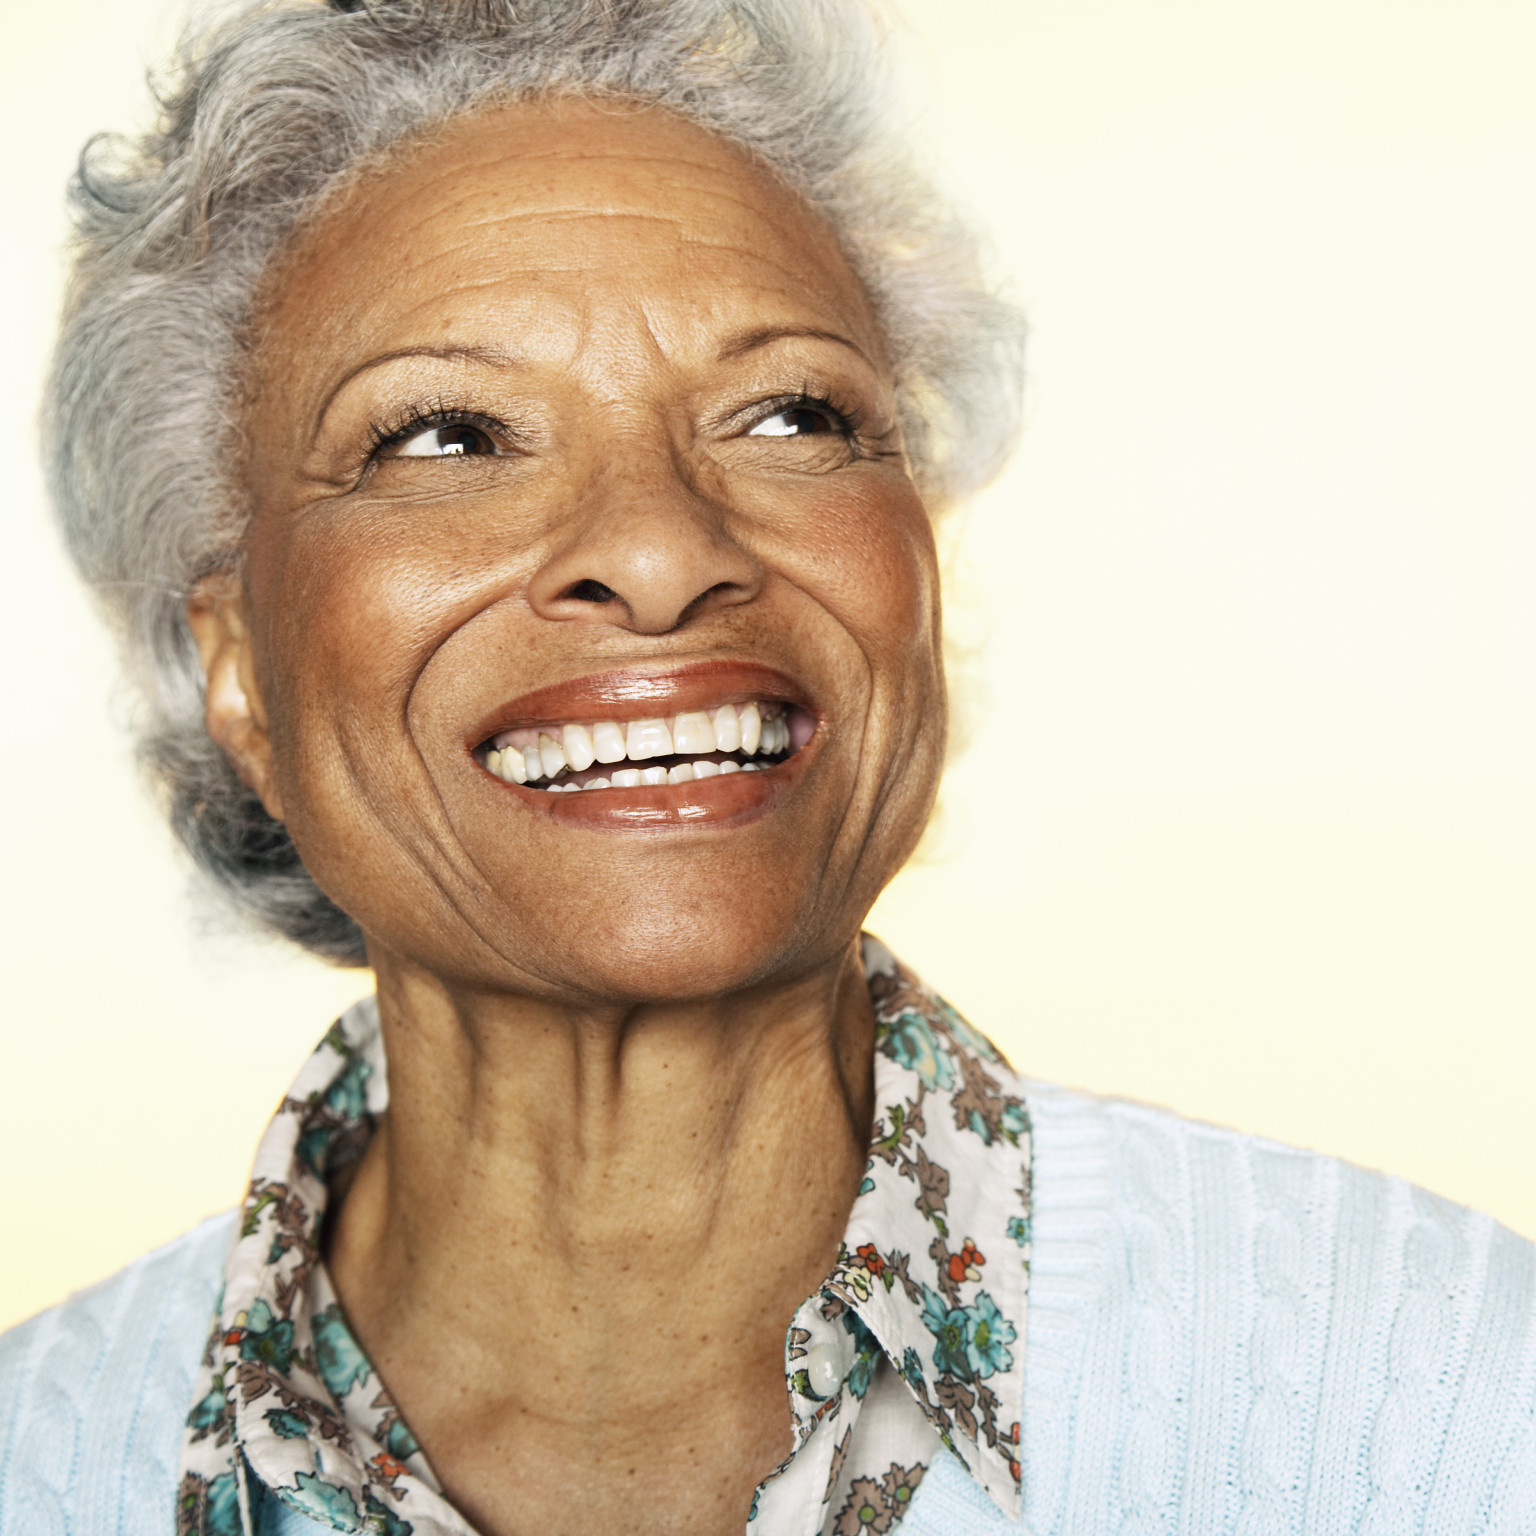 Aging: Aging Well: 22 Tips To Help You Age Brilliantly